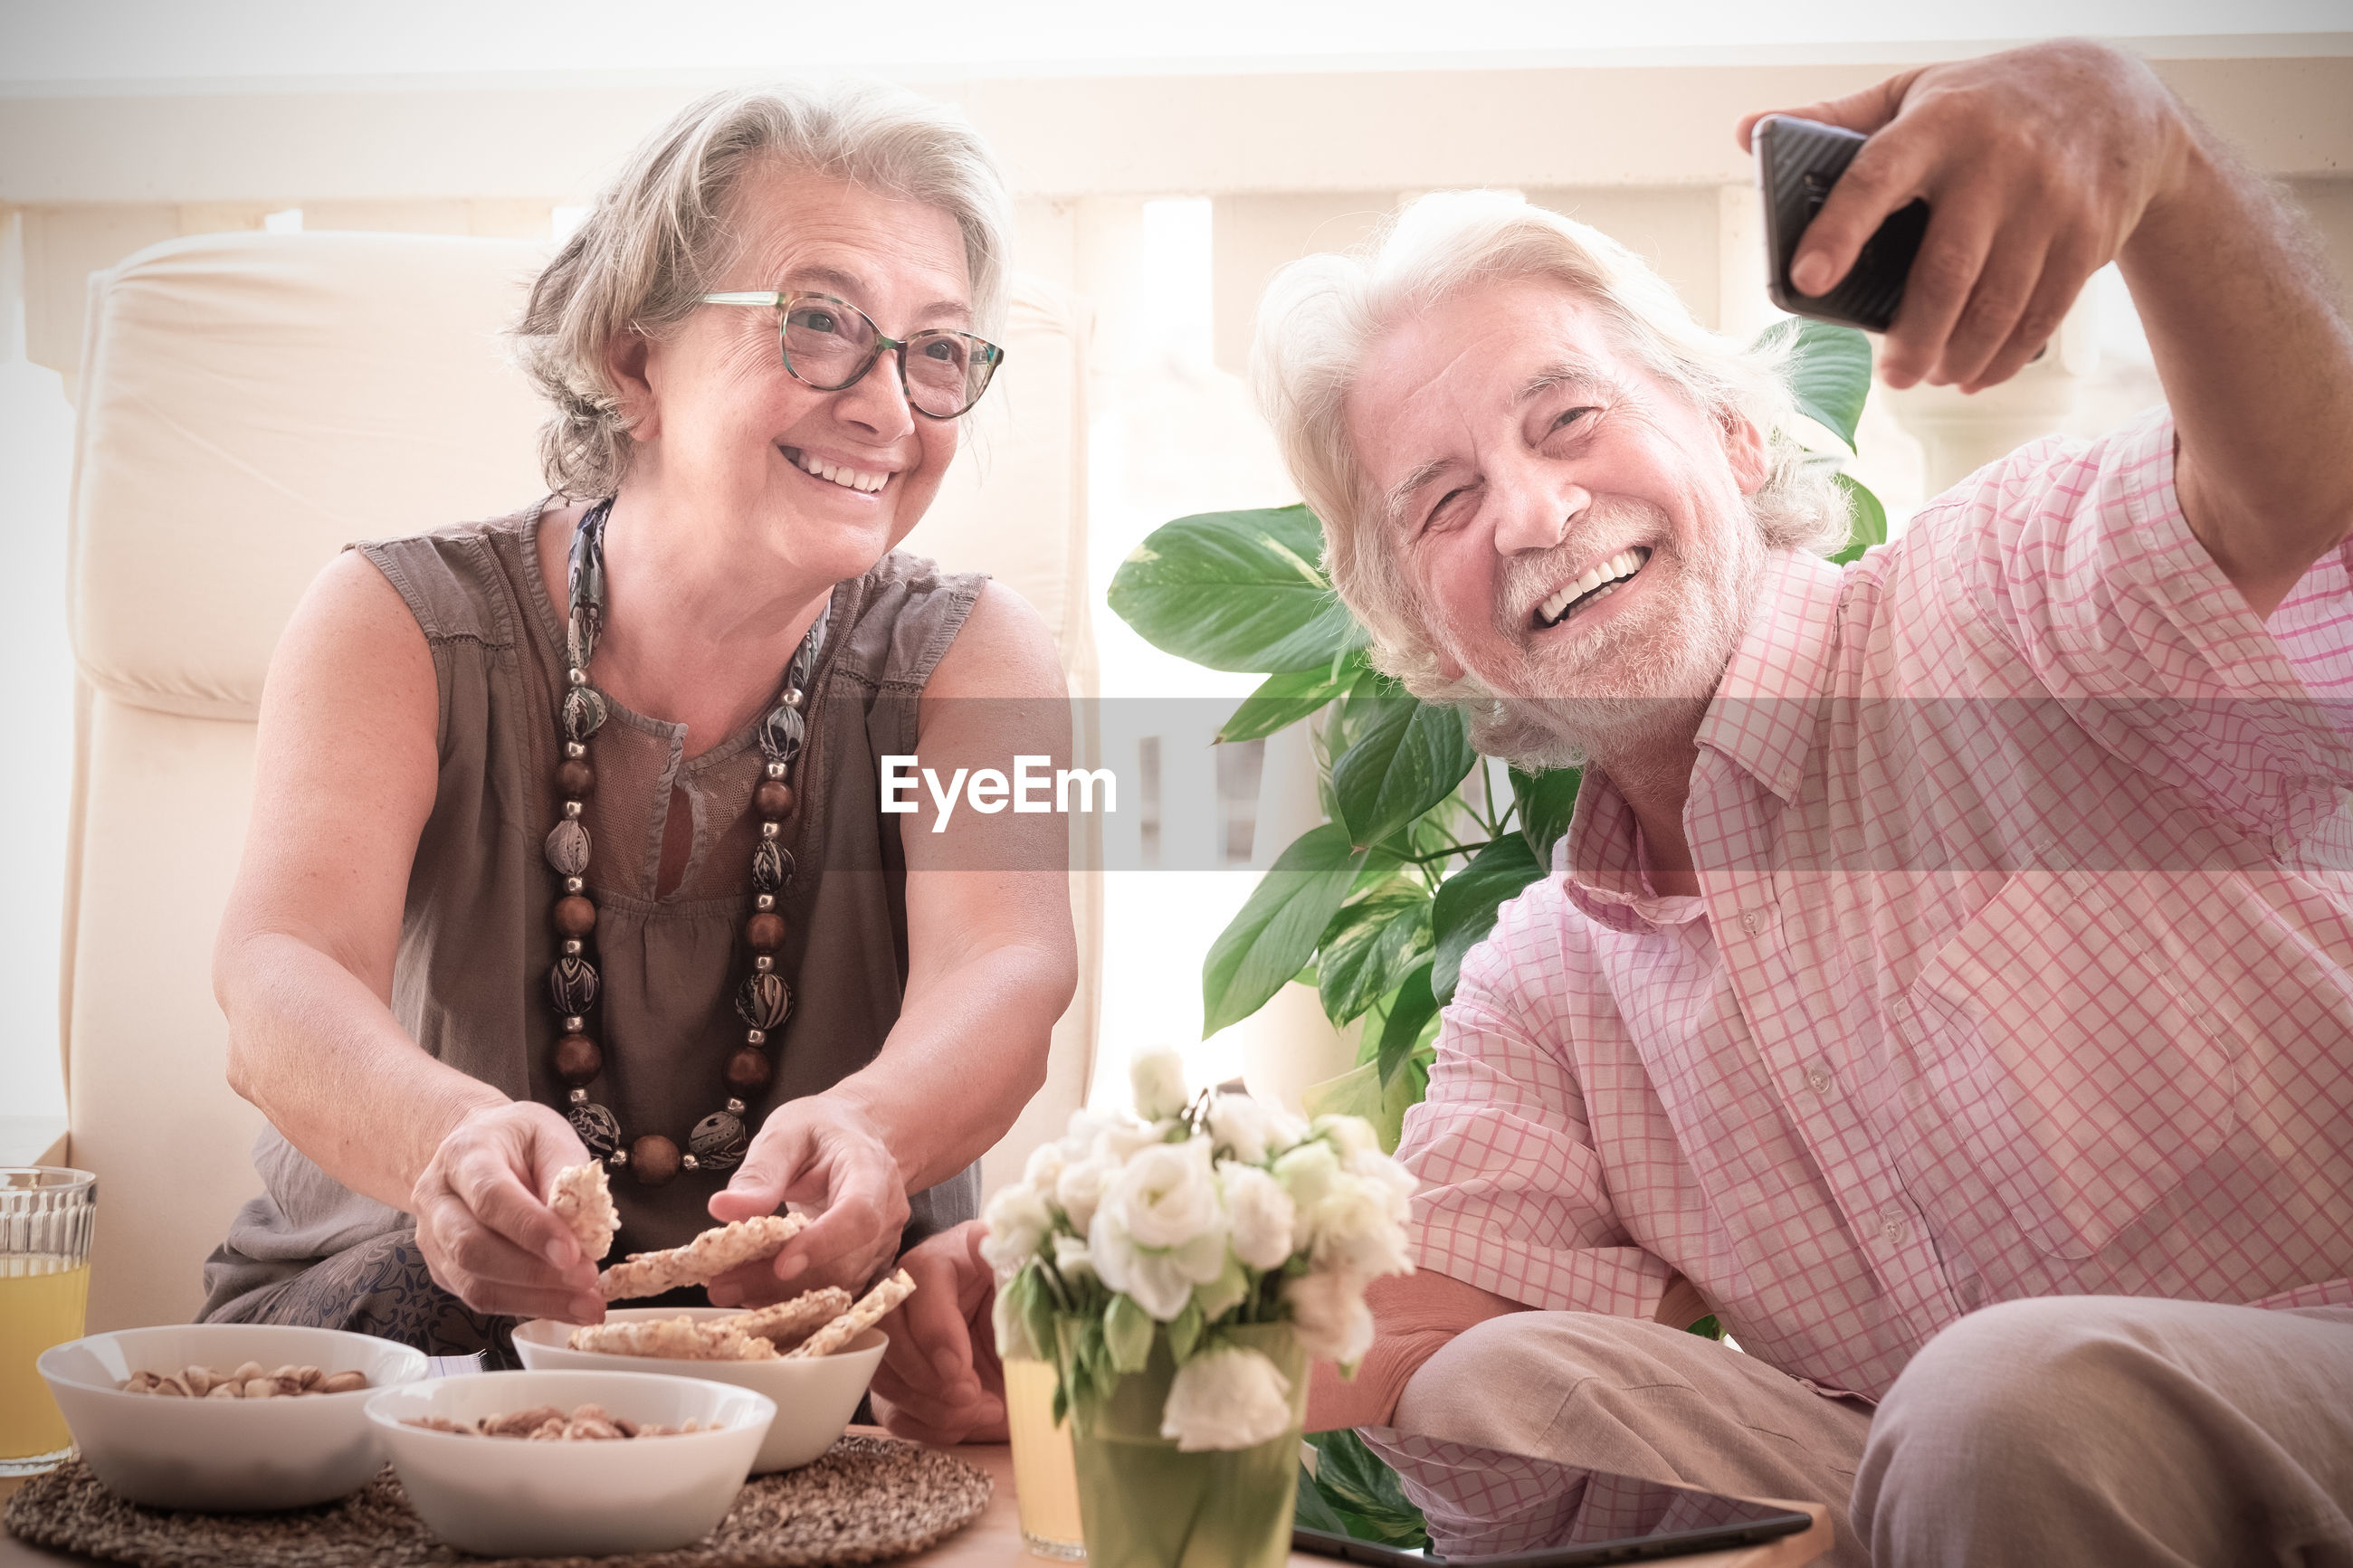 Smiling couple eating food while taking selfie by mobile phone on table